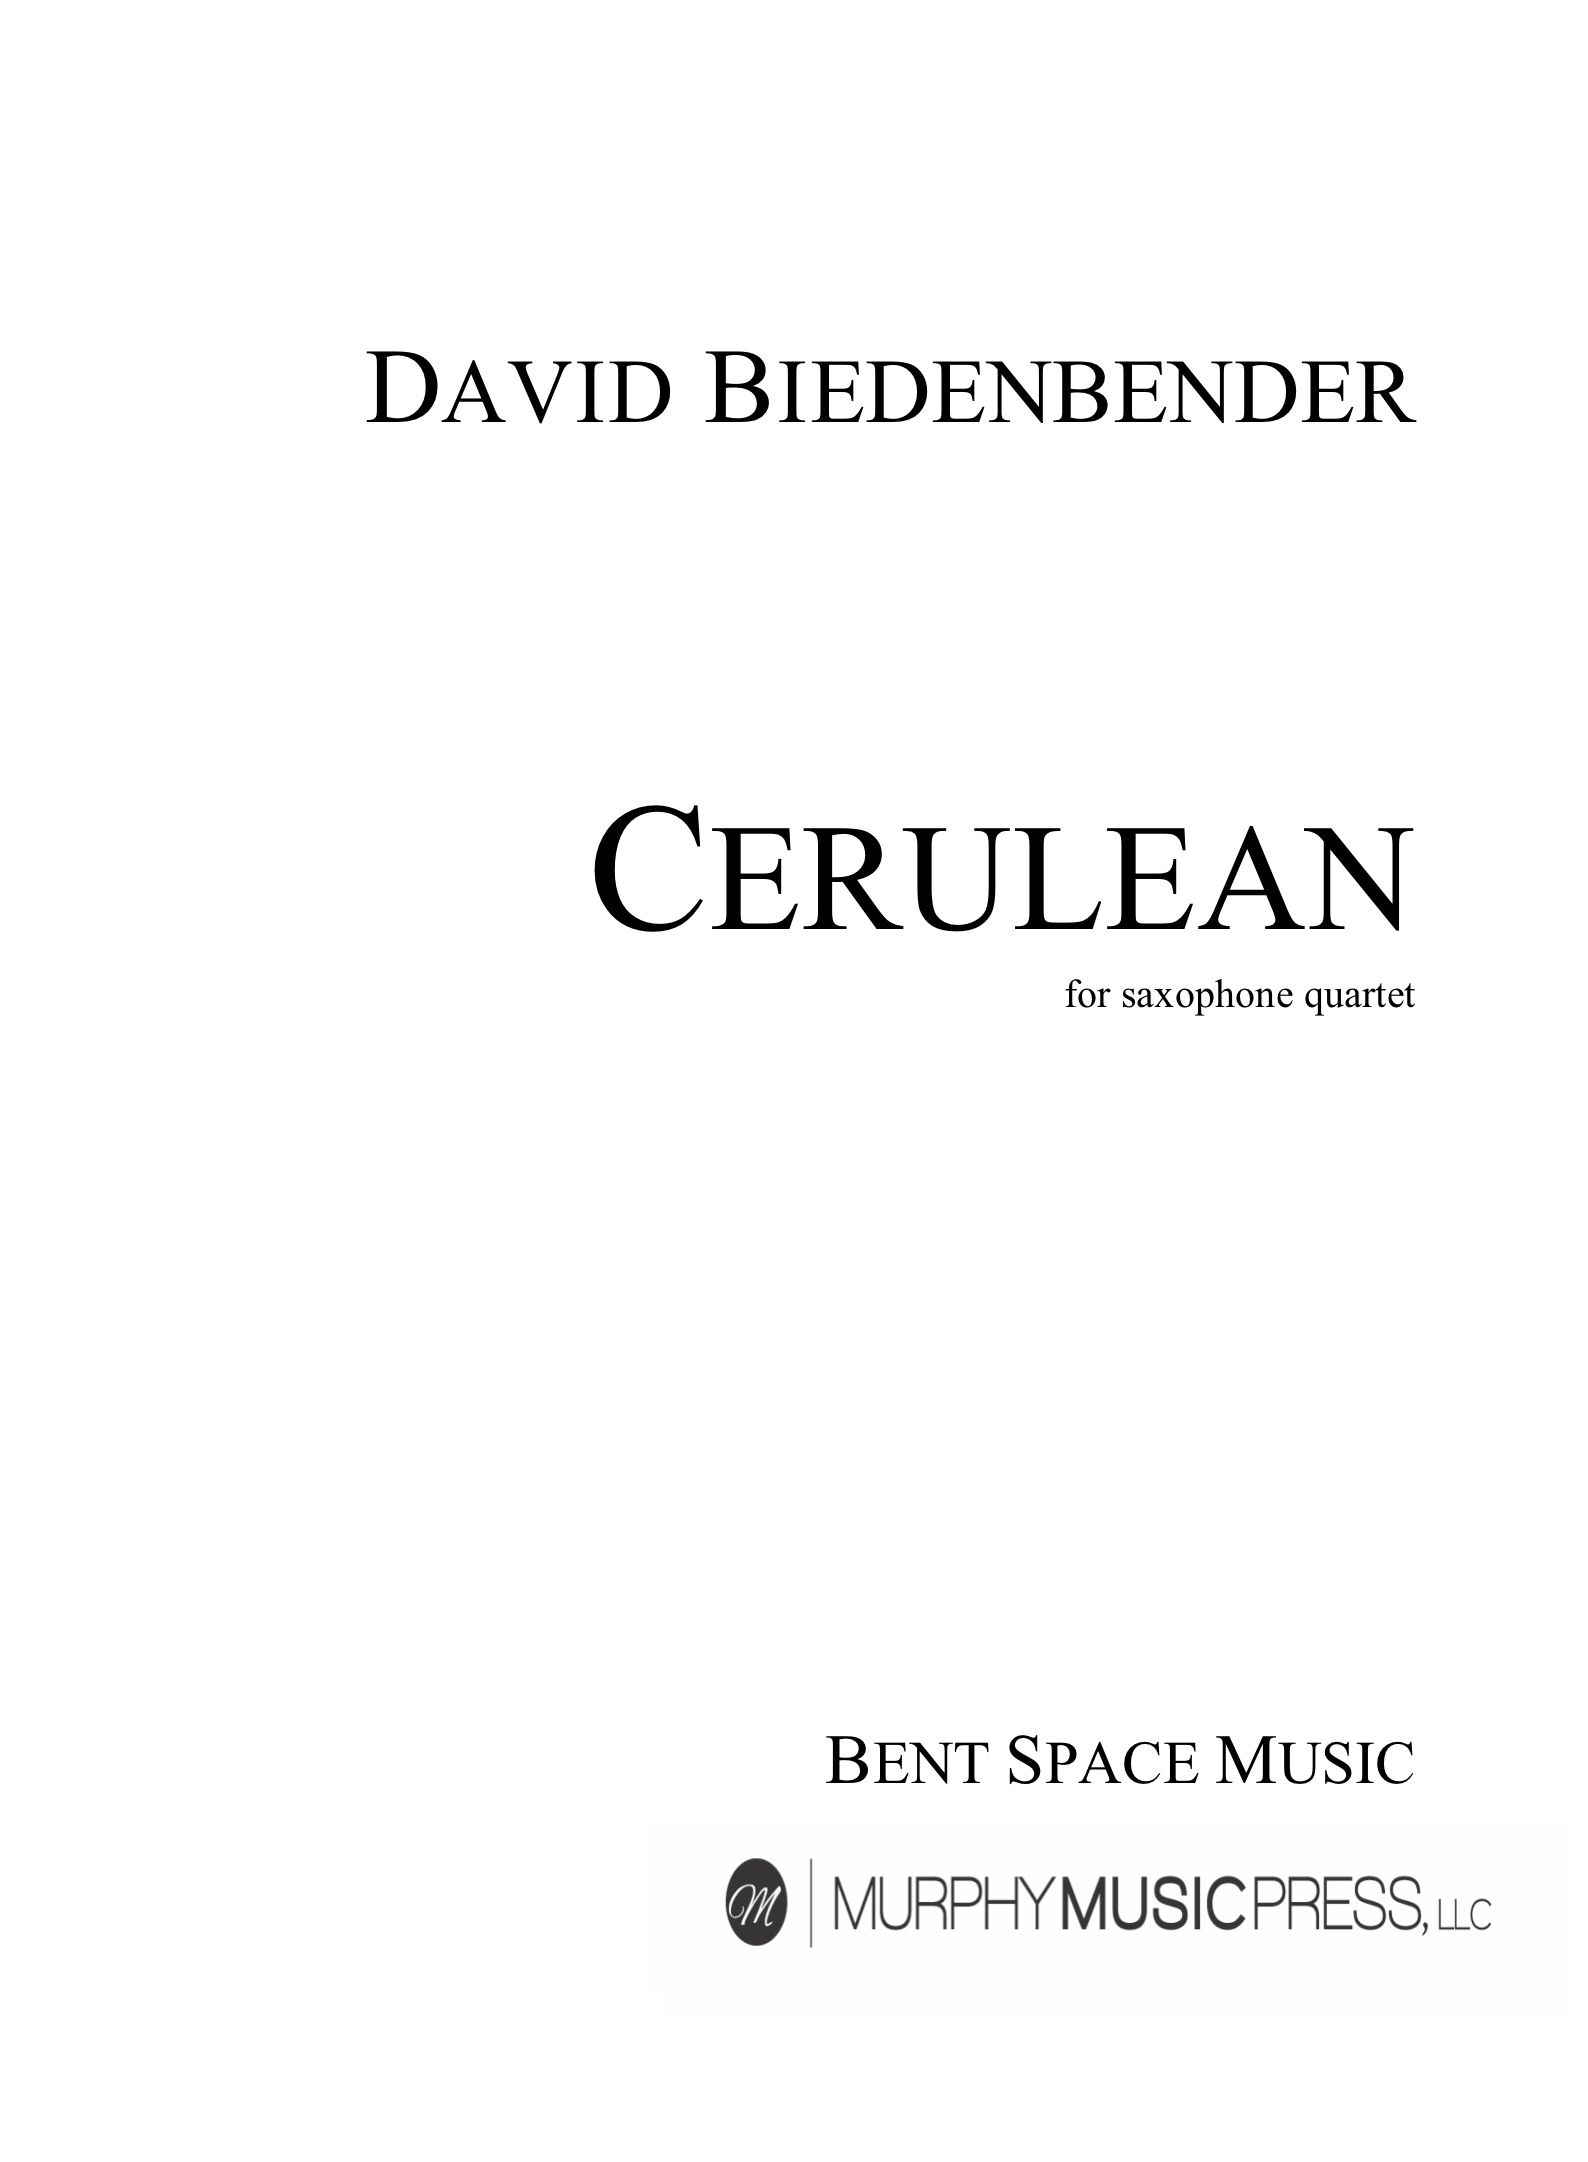 Cerulean  by David Biedenbender